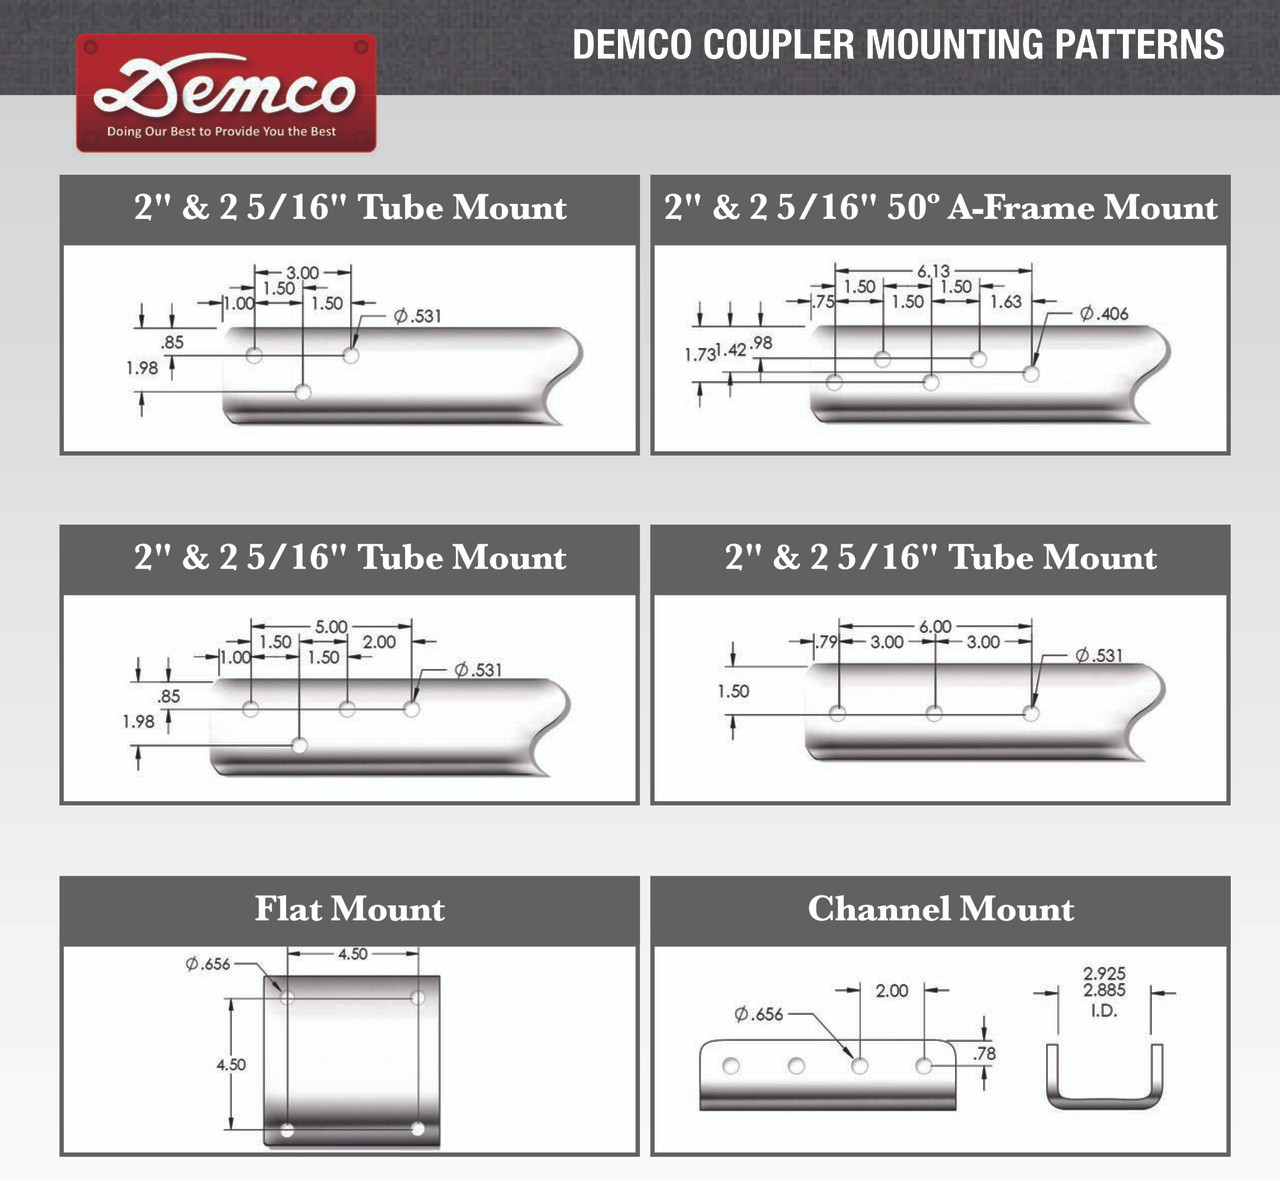 "13203-95 --- Demco eZ Latch Zinc 2-5/16"" Coupler fits 3"" tongue - 18,000 lb Capacity"